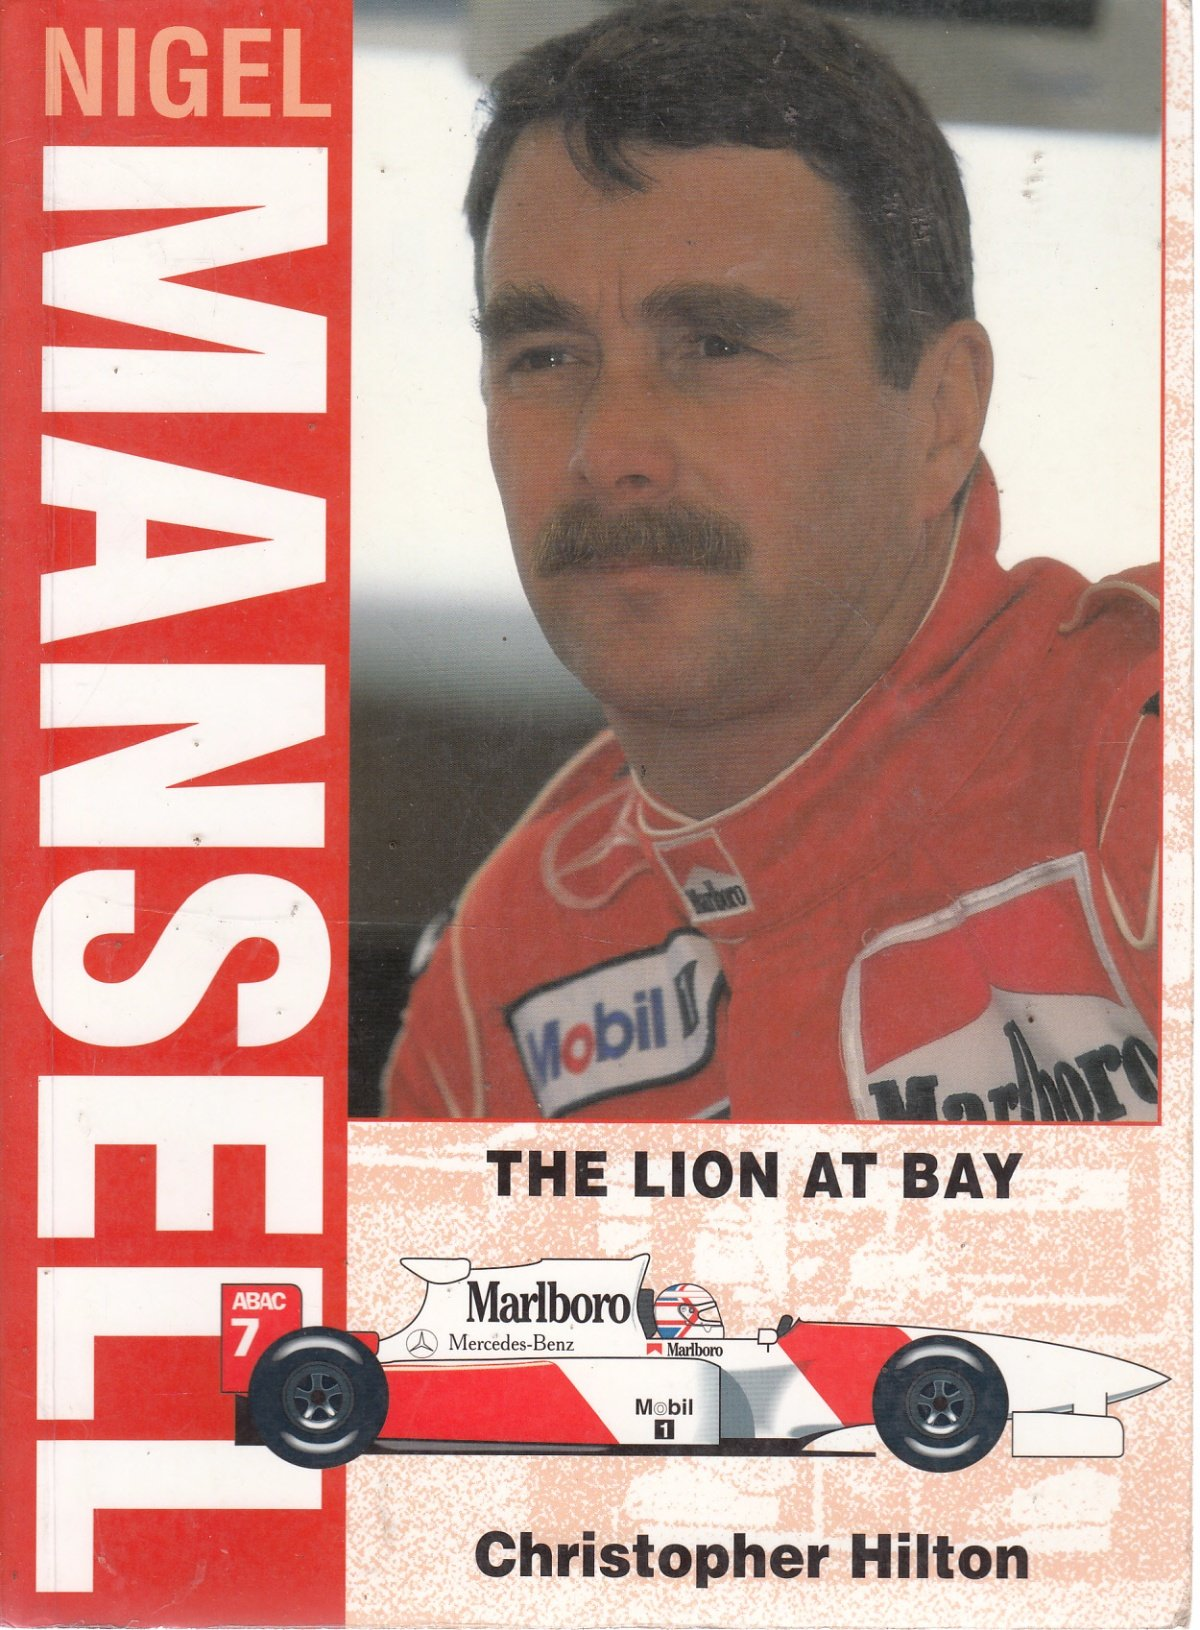 Nigel Mansell: The Lion at Bay